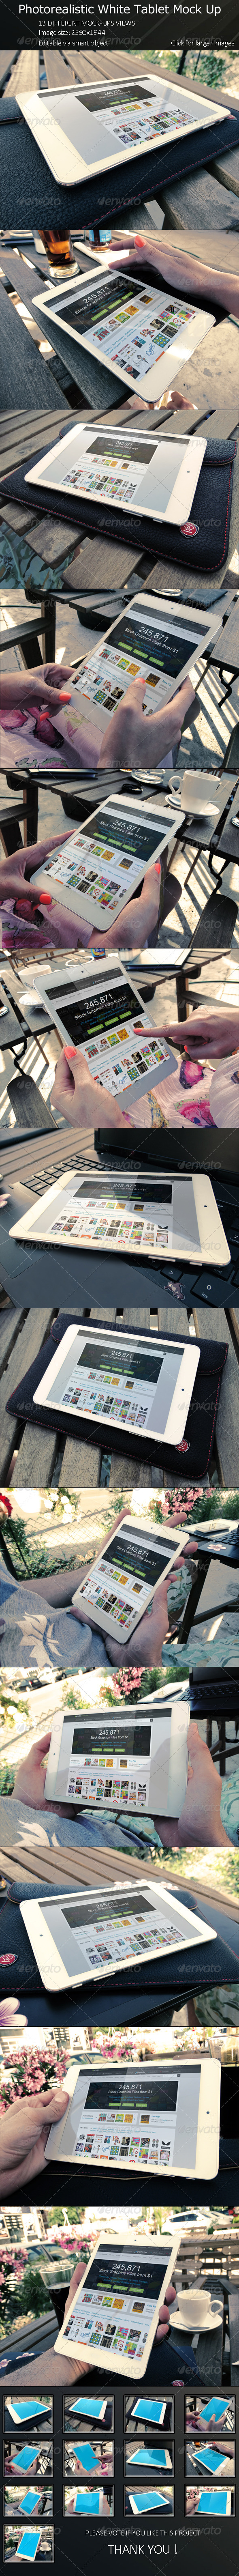 GraphicRiver Photorealistic White Tablet Mock Up 8248174